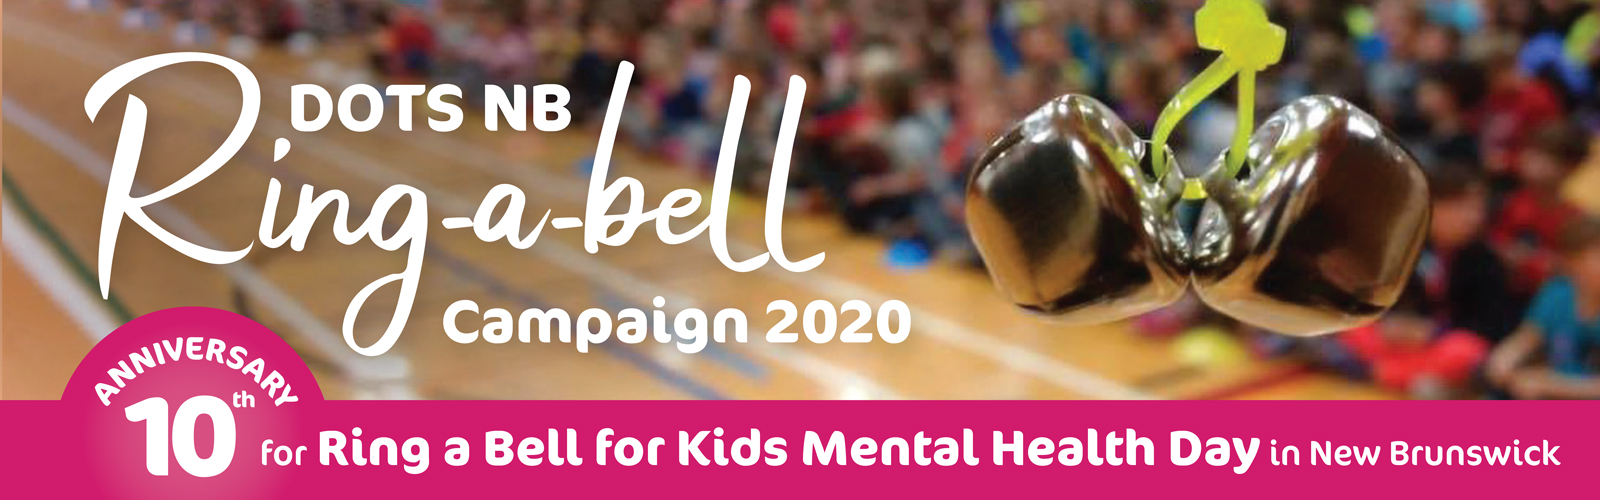 Dots NB Ring-a-Bell 2020 Campaign